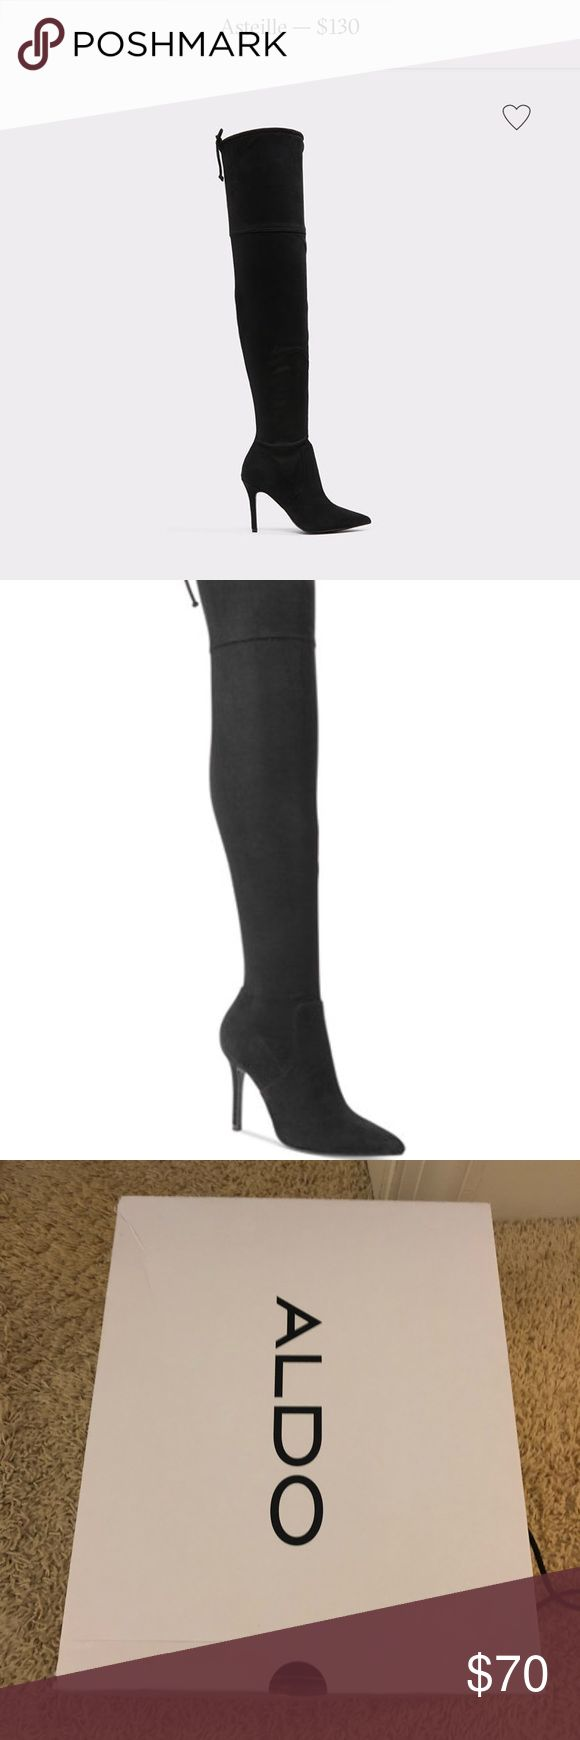 Aldo Asteille over the knee boots Also over the knee boots. Size us 8. Worn once. Almost like new.  Will try to ship in the box if I can find a shipping box big enough. Aldo Shoes Over the Knee Boots